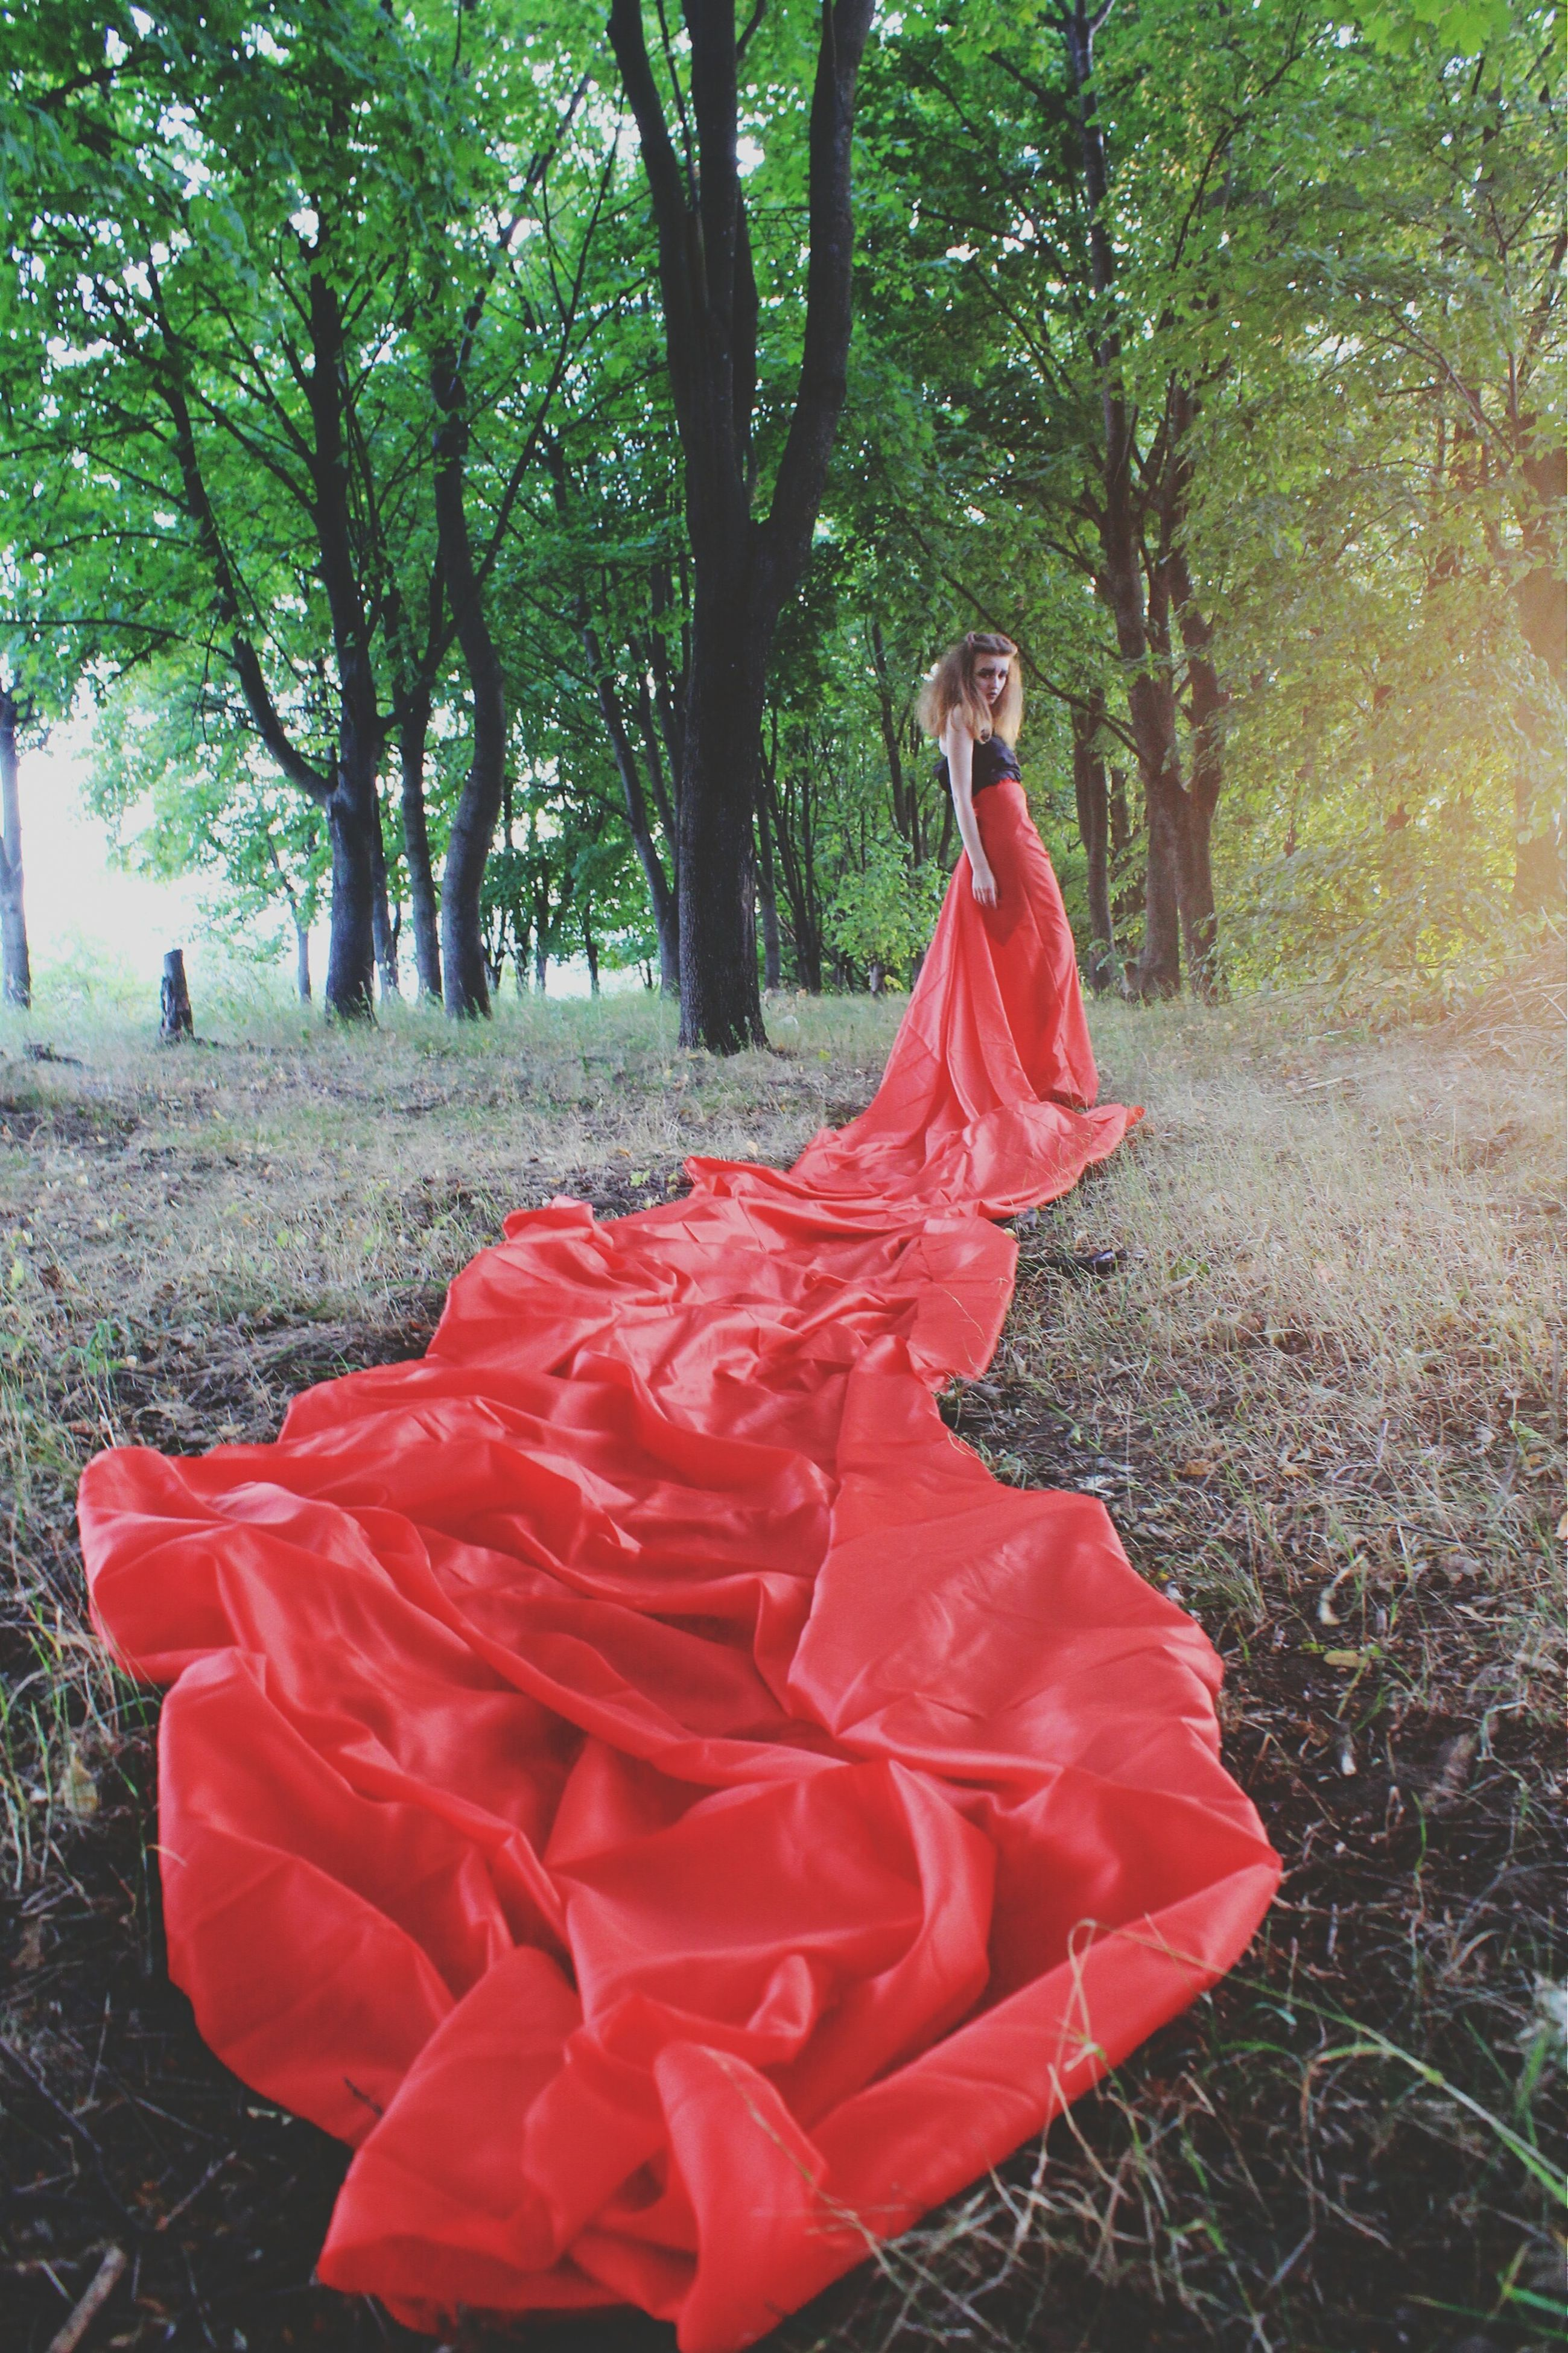 red, tree, park - man made space, focus on foreground, day, nature, lifestyles, forest, flower, growth, outdoors, leisure activity, full length, casual clothing, park, front view, rear view, sitting